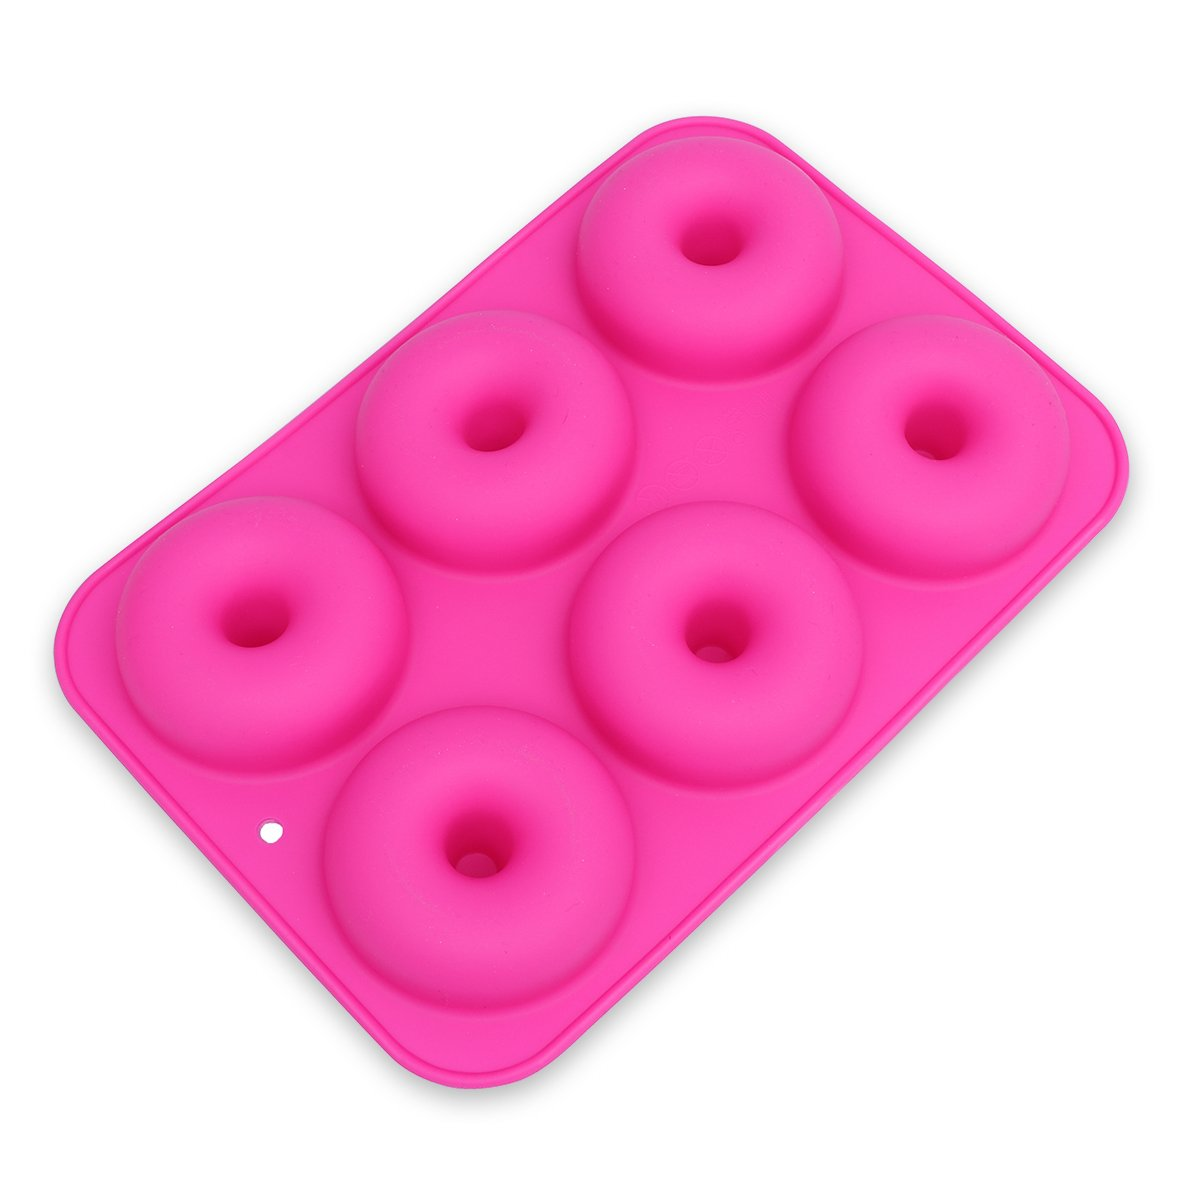 OUNONA 6-Cavity Silicone Donut Mold,Non-Stick Donut Baking Pan for Cake Biscuit Bagels Muffins (Rose Red)